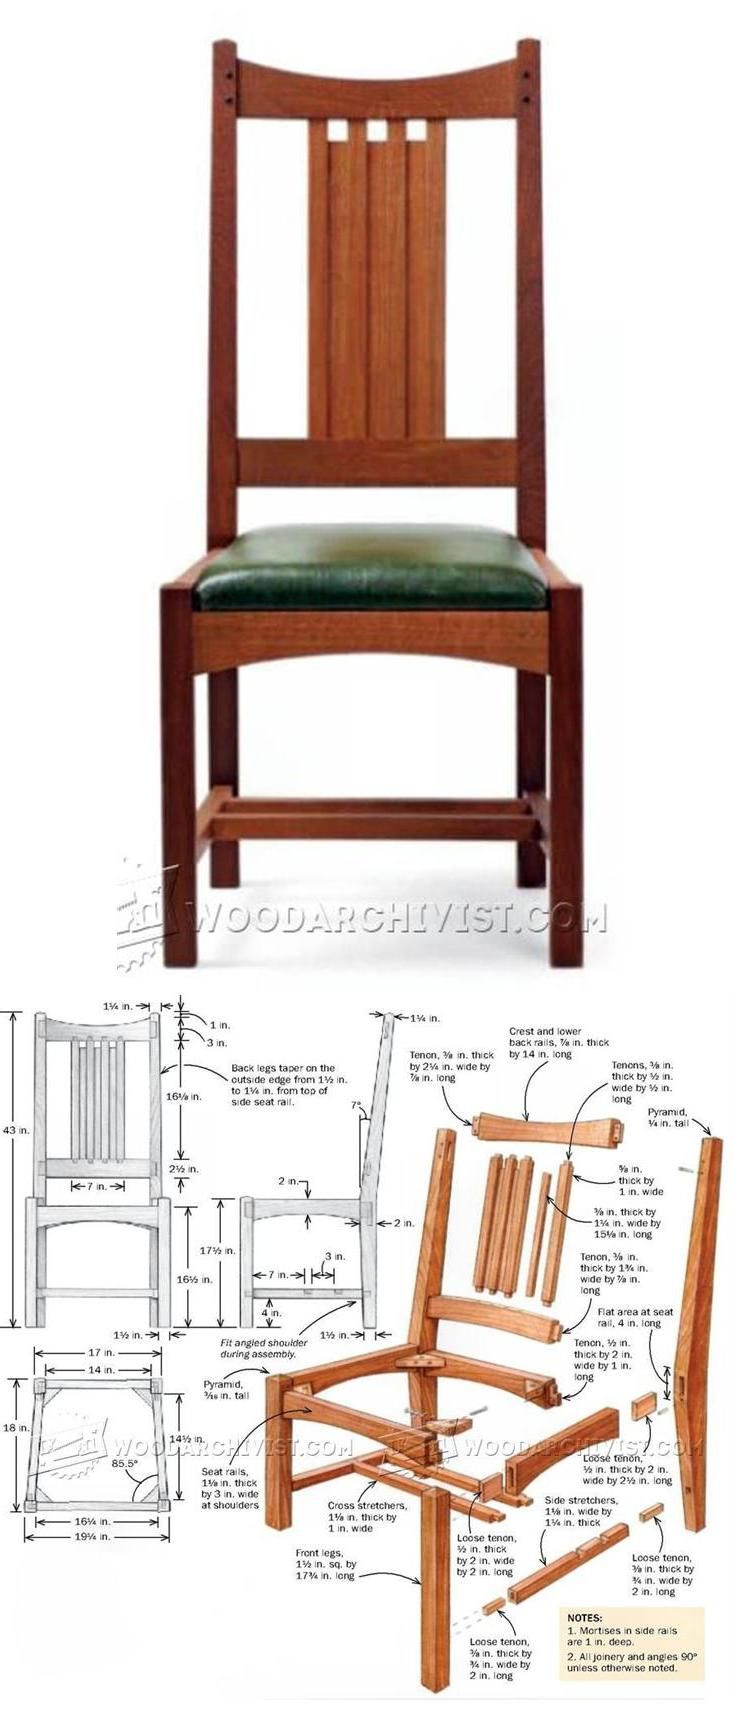 Arts and crafts furniture plans - Arts And Crafts Side Chair Plans Furniture Plans And Projects Woodarchivist Com